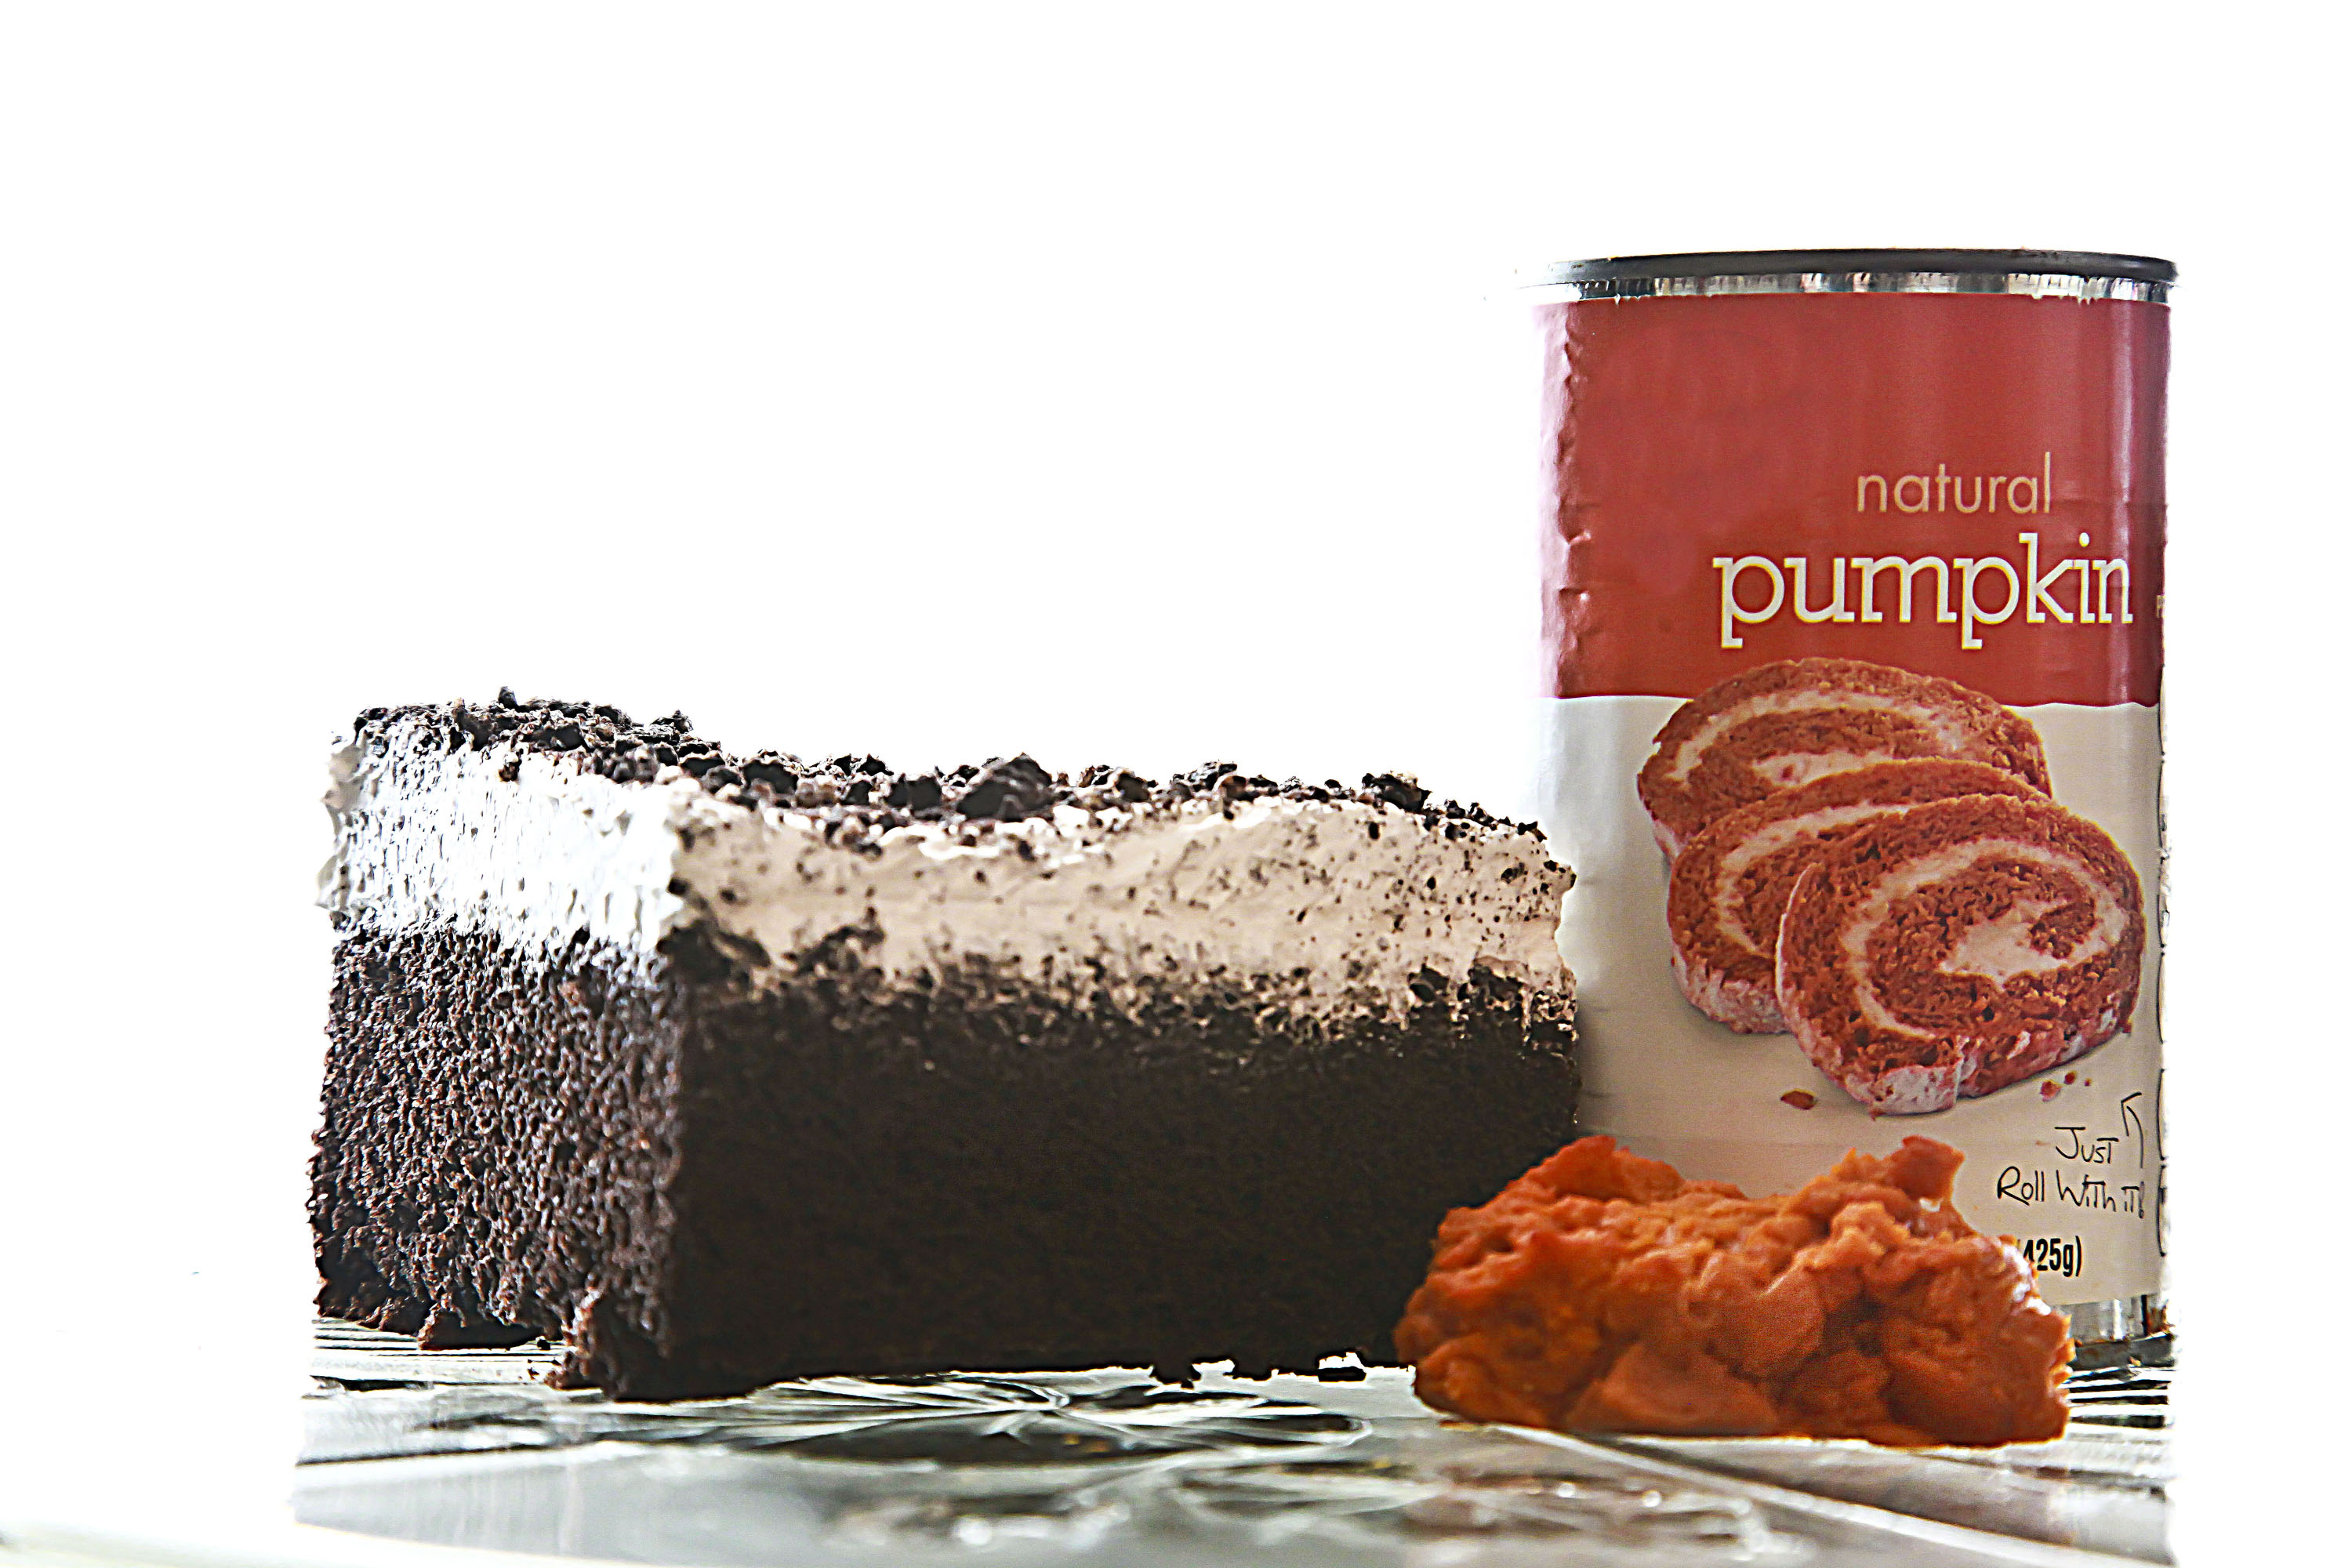 How to Bake With Canned Pumpkin Instead of Eggs & Oil | LIVESTRONG.COM